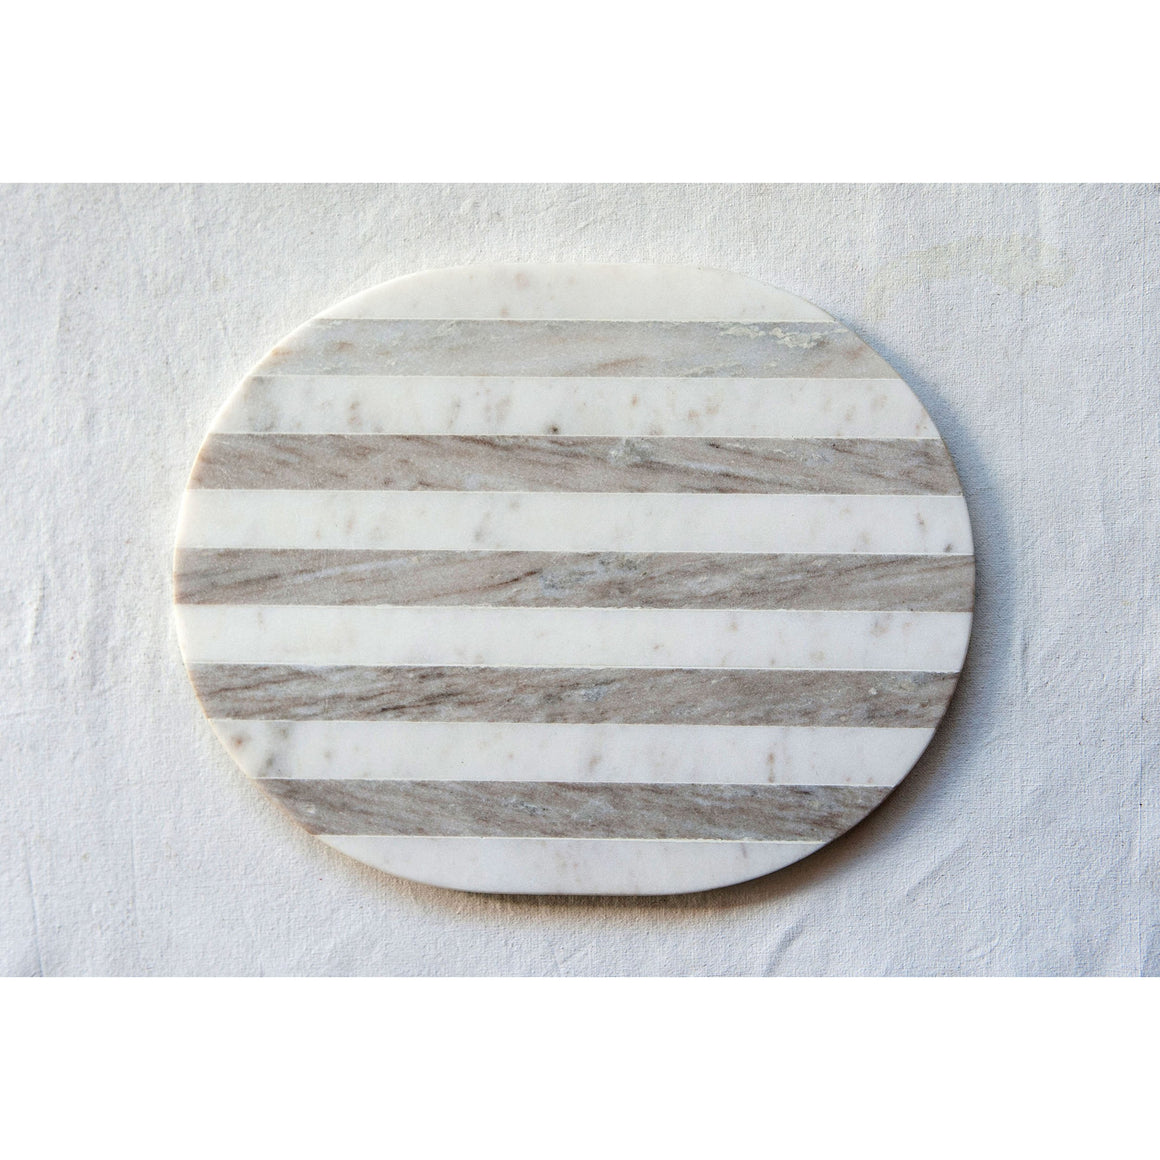 Grey & White Striped Marble Cheese / Cutting Board